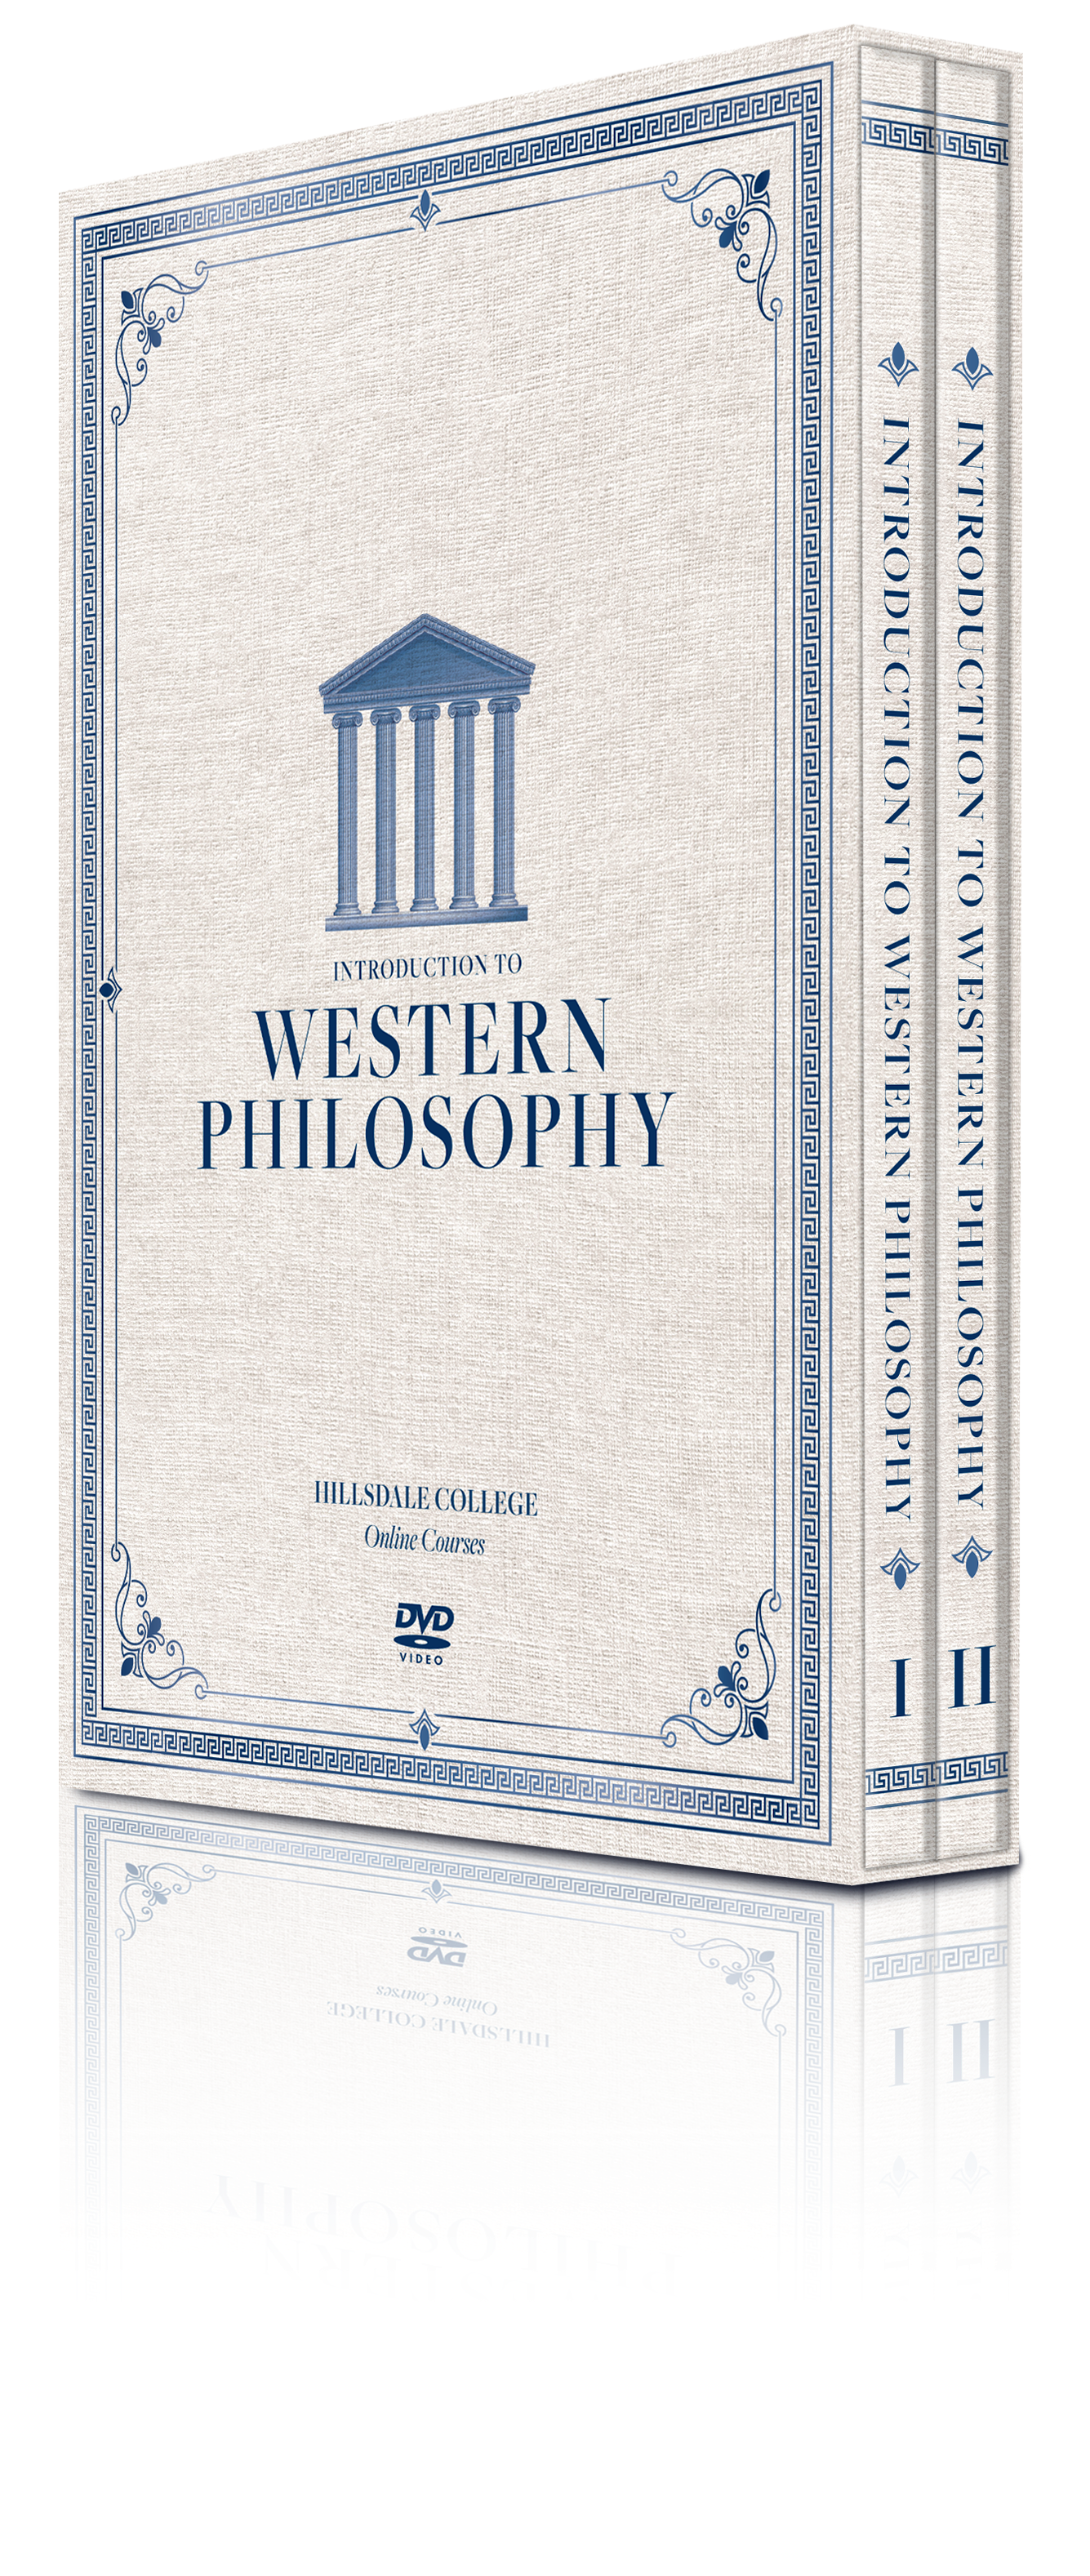 Introduction to Western Philosophy DVD Box Set Image